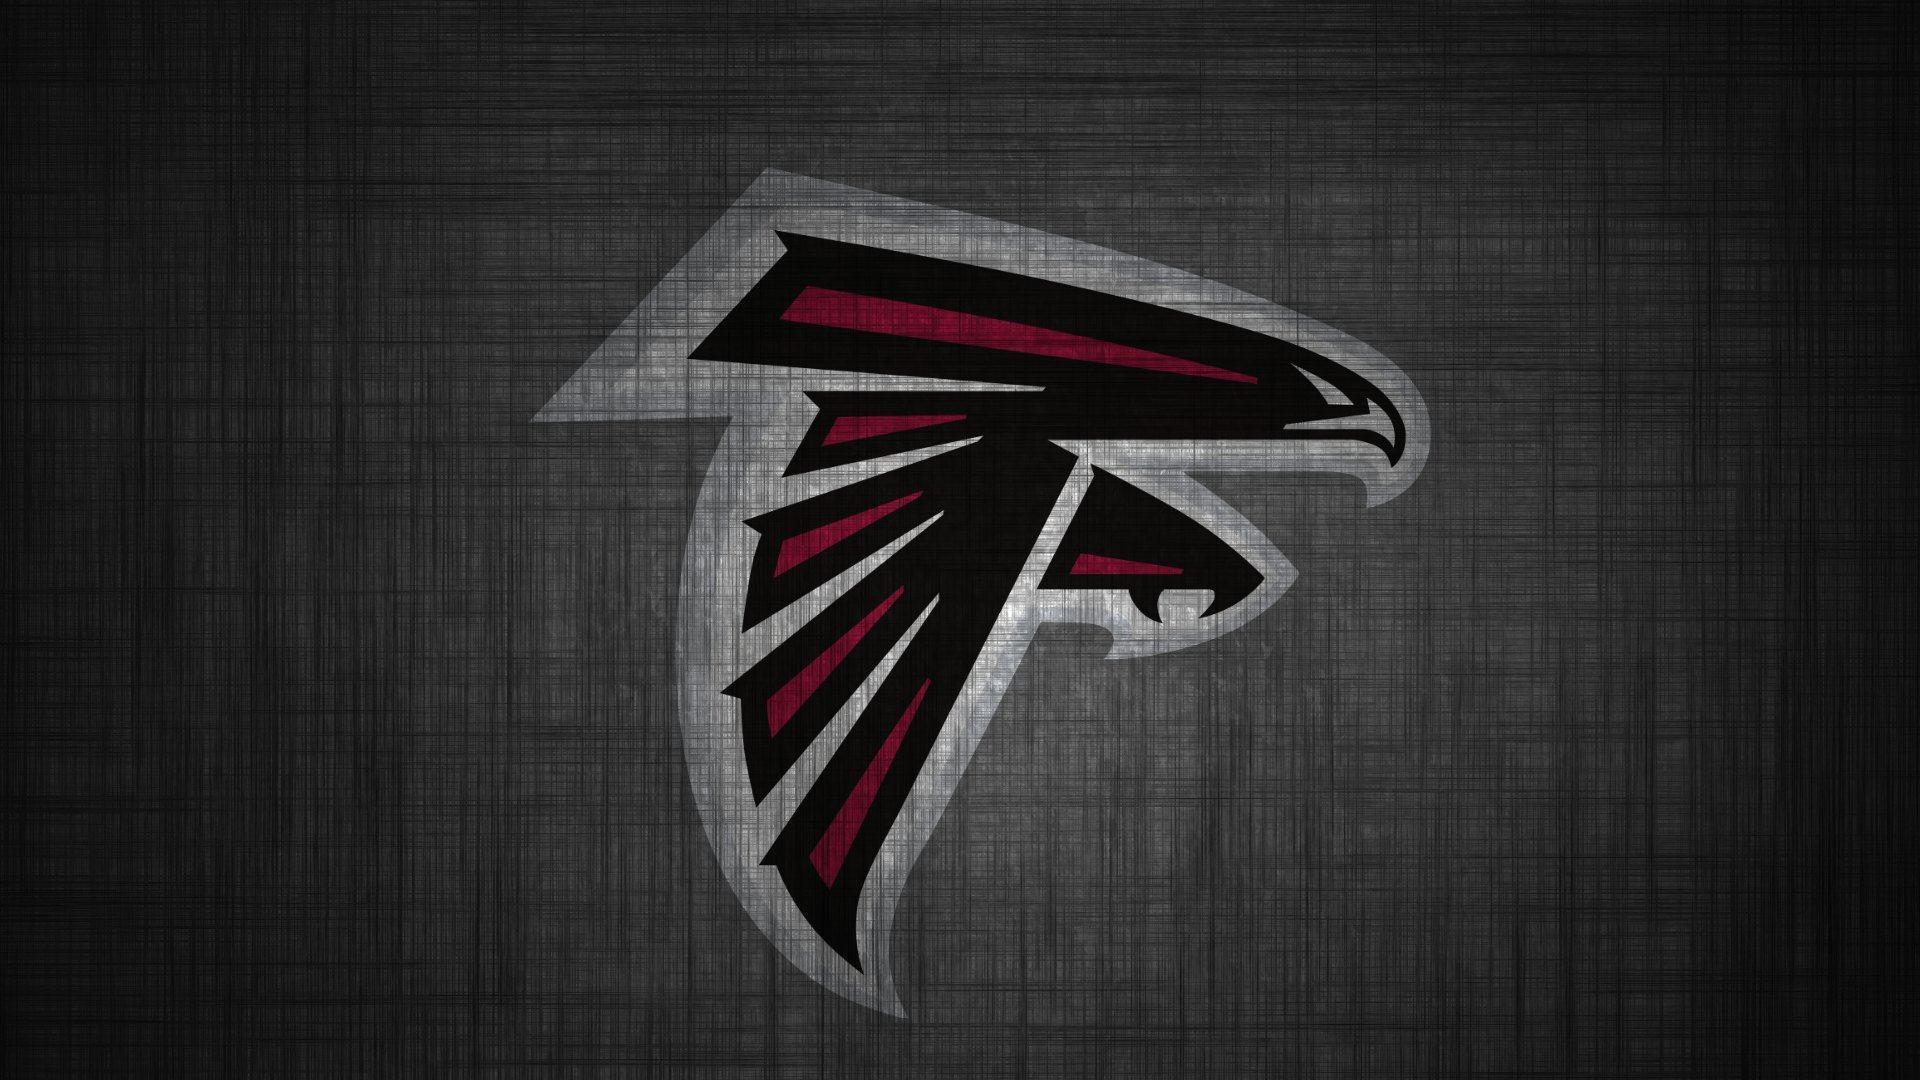 Download Atlanta Falcons Wallpaper and Get a New Look on Your Computer Screen